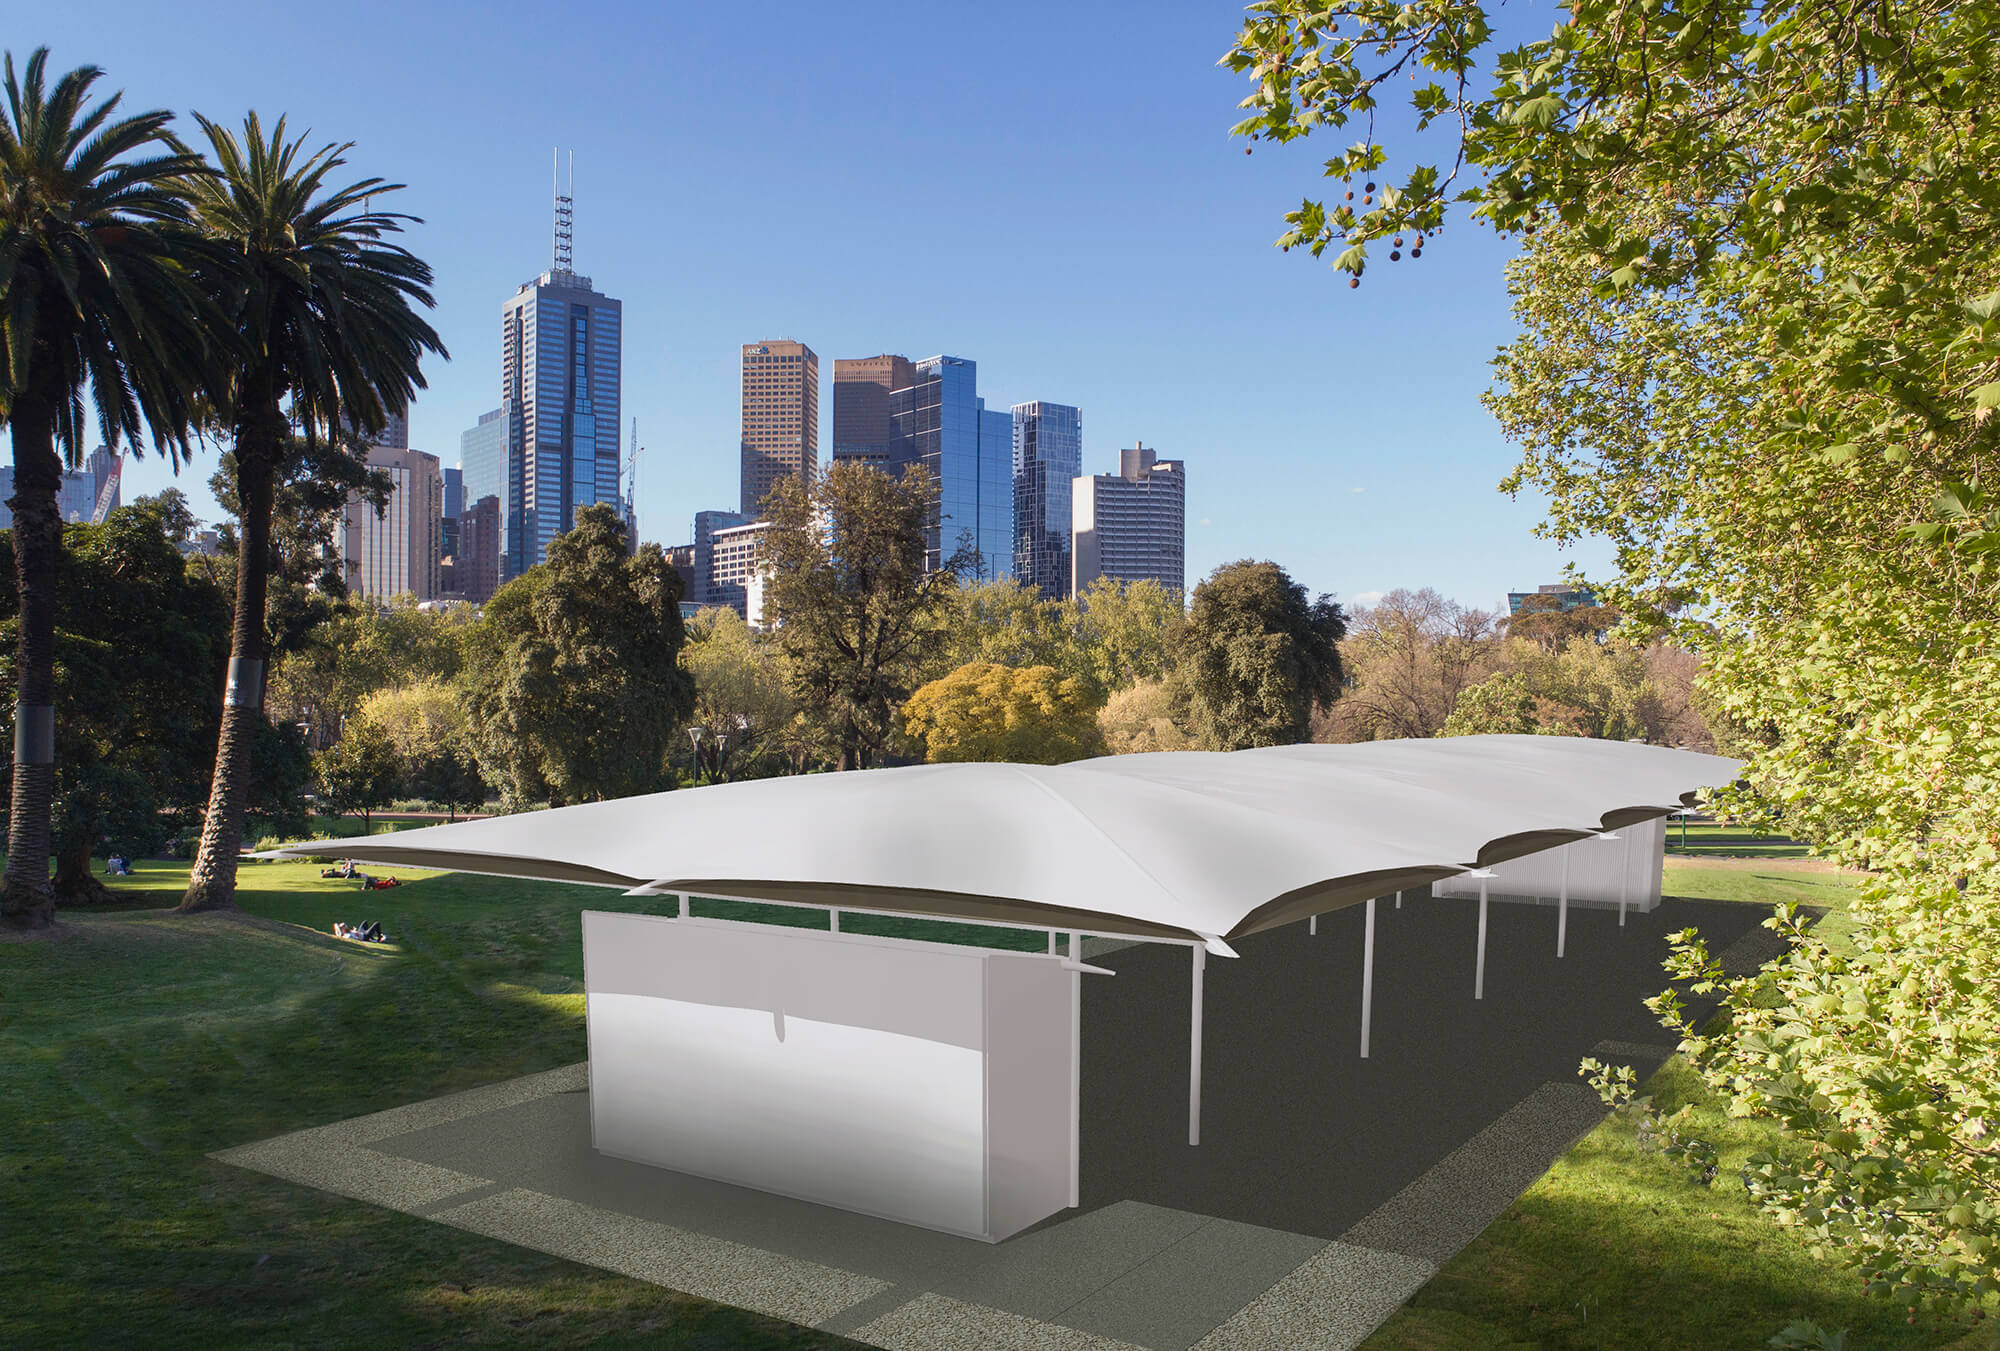 Big News! First look at Glenn Murcutt's MPavilion 2019 design